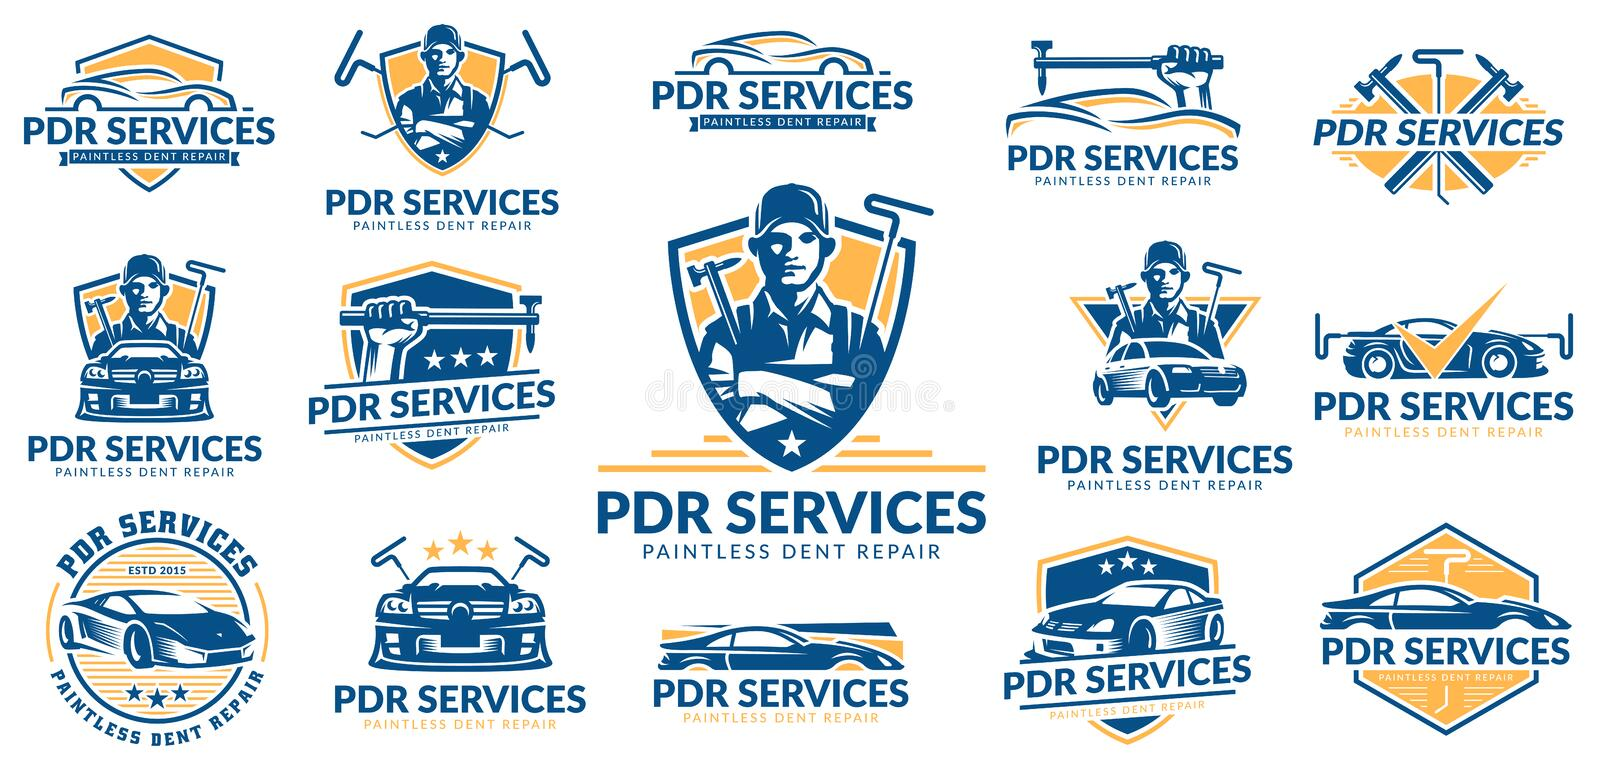 Paintless Dent Repair logo set, PDR service logo pack, vector collection royalty free illustration